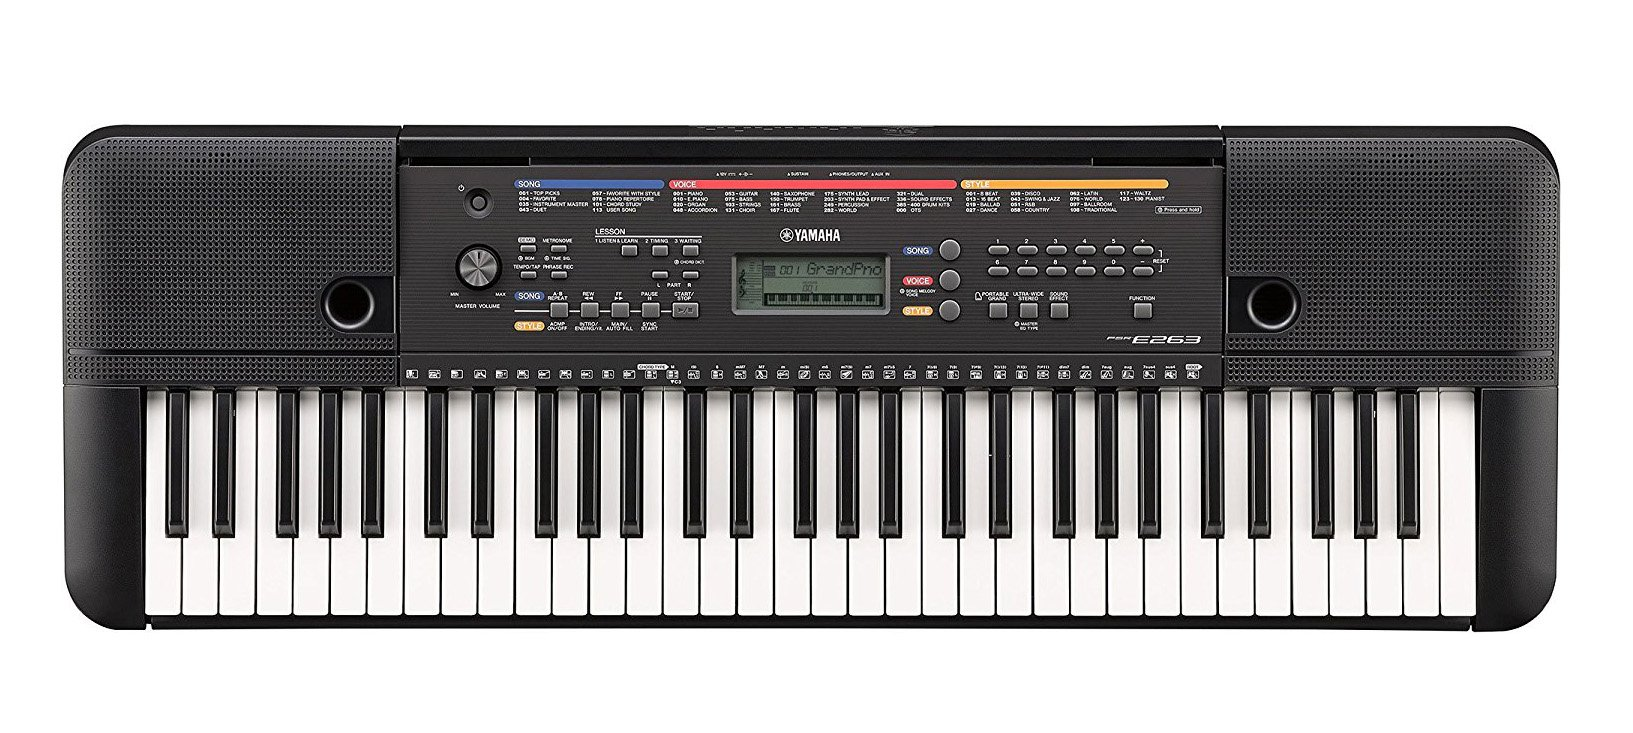 Yamaha PSRE263 61 Key Keyboard with Knox Bench, Stand, Studio Headphones, Survival Kit (Includes Power Adaptor) by YAMAHA (Image #2)